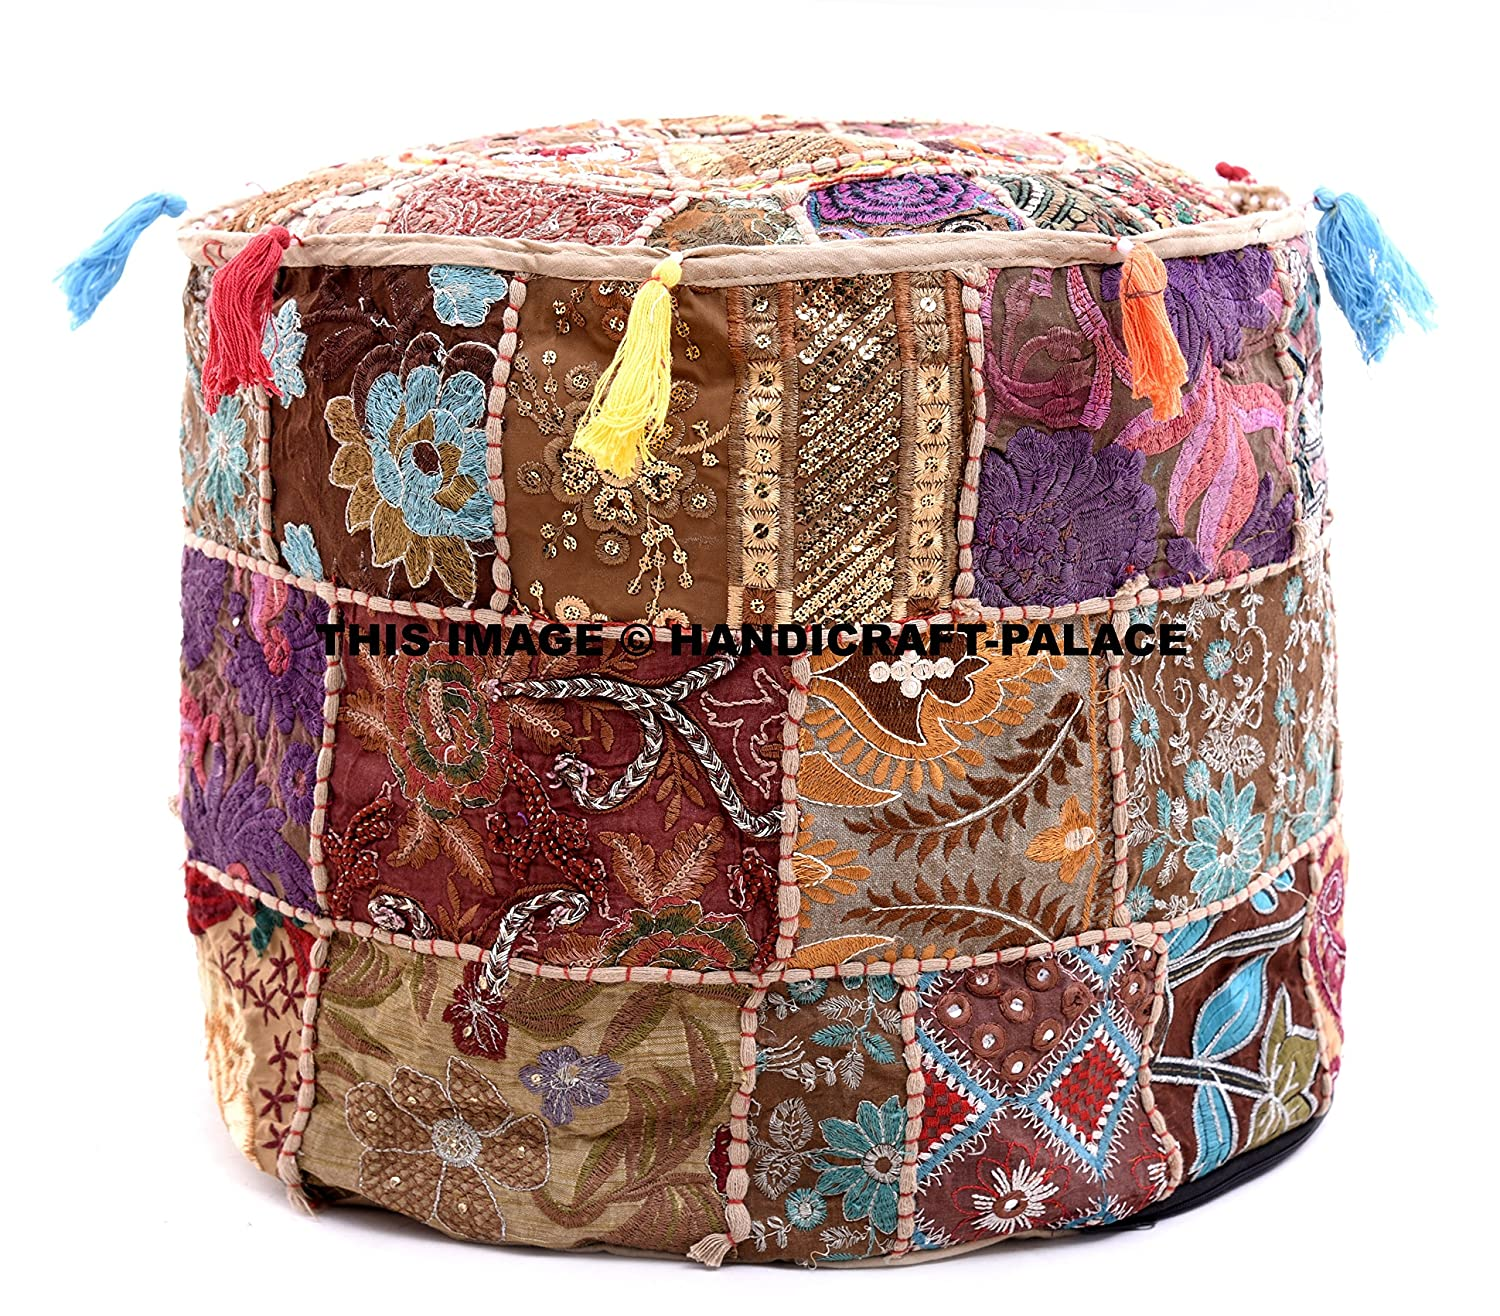 Indian Round Patchwork Embroidered Ottoman Pouf Ethnic Indian Decorative Cotton Pouffe,Designer Ottoman Pouf, Home Living Footstool Chair Cover, Bohemian Ottoman Pouf Handicraft-Palace POSS-8